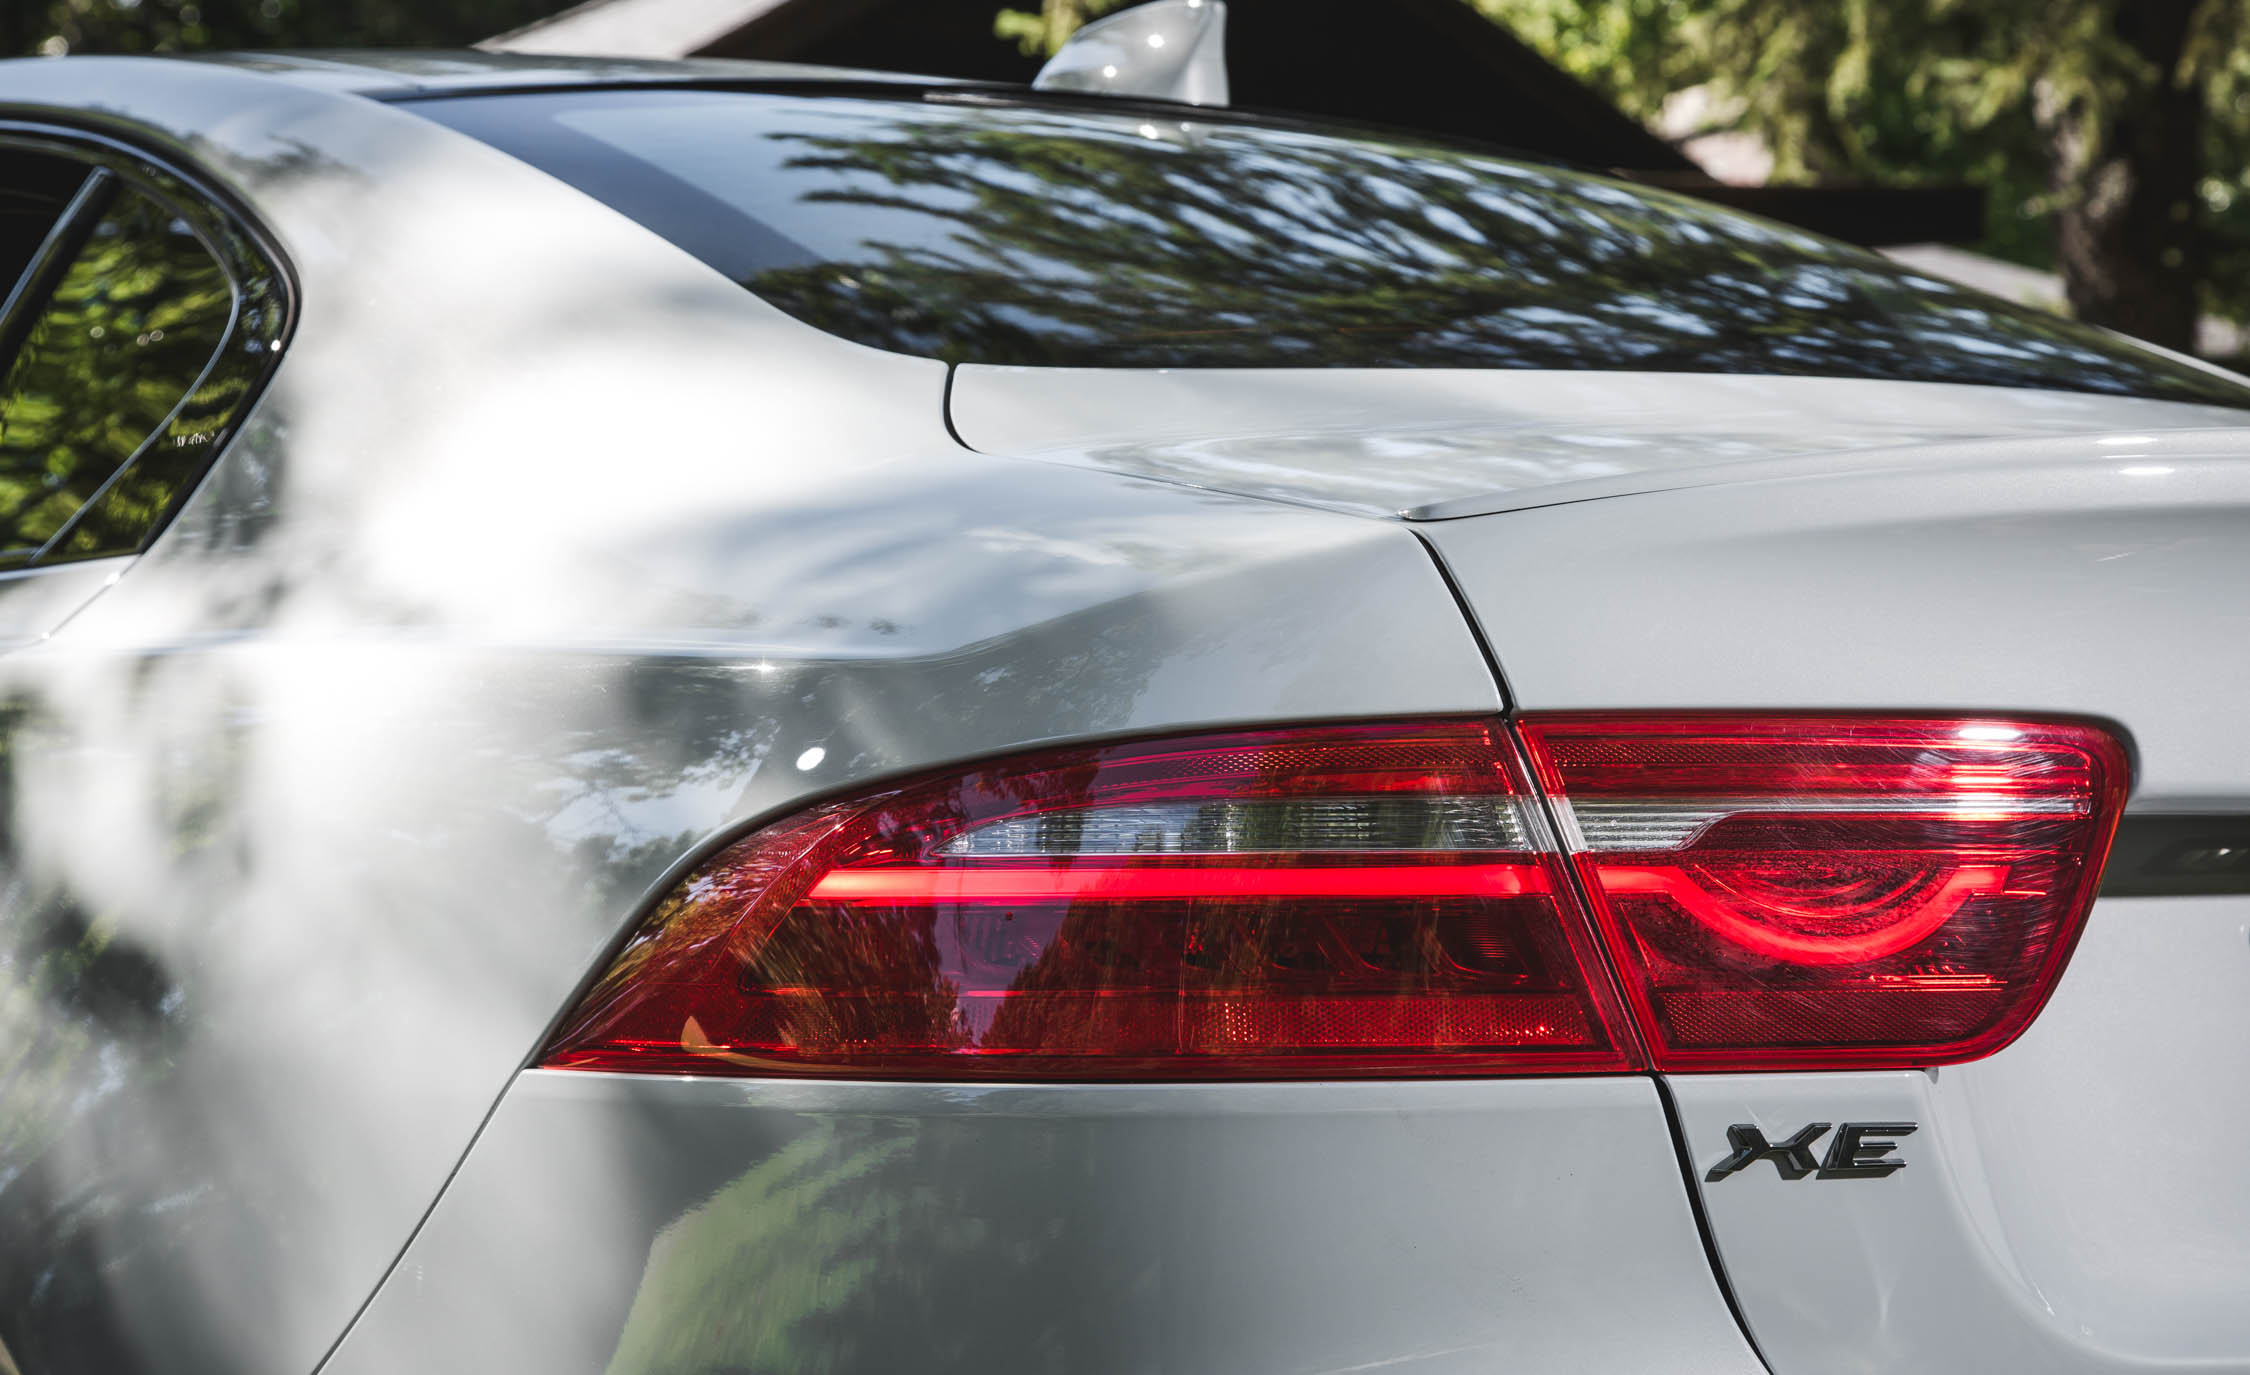 2017 Jaguar Xe White Exterior View Taillight (Photo 29 of 32)